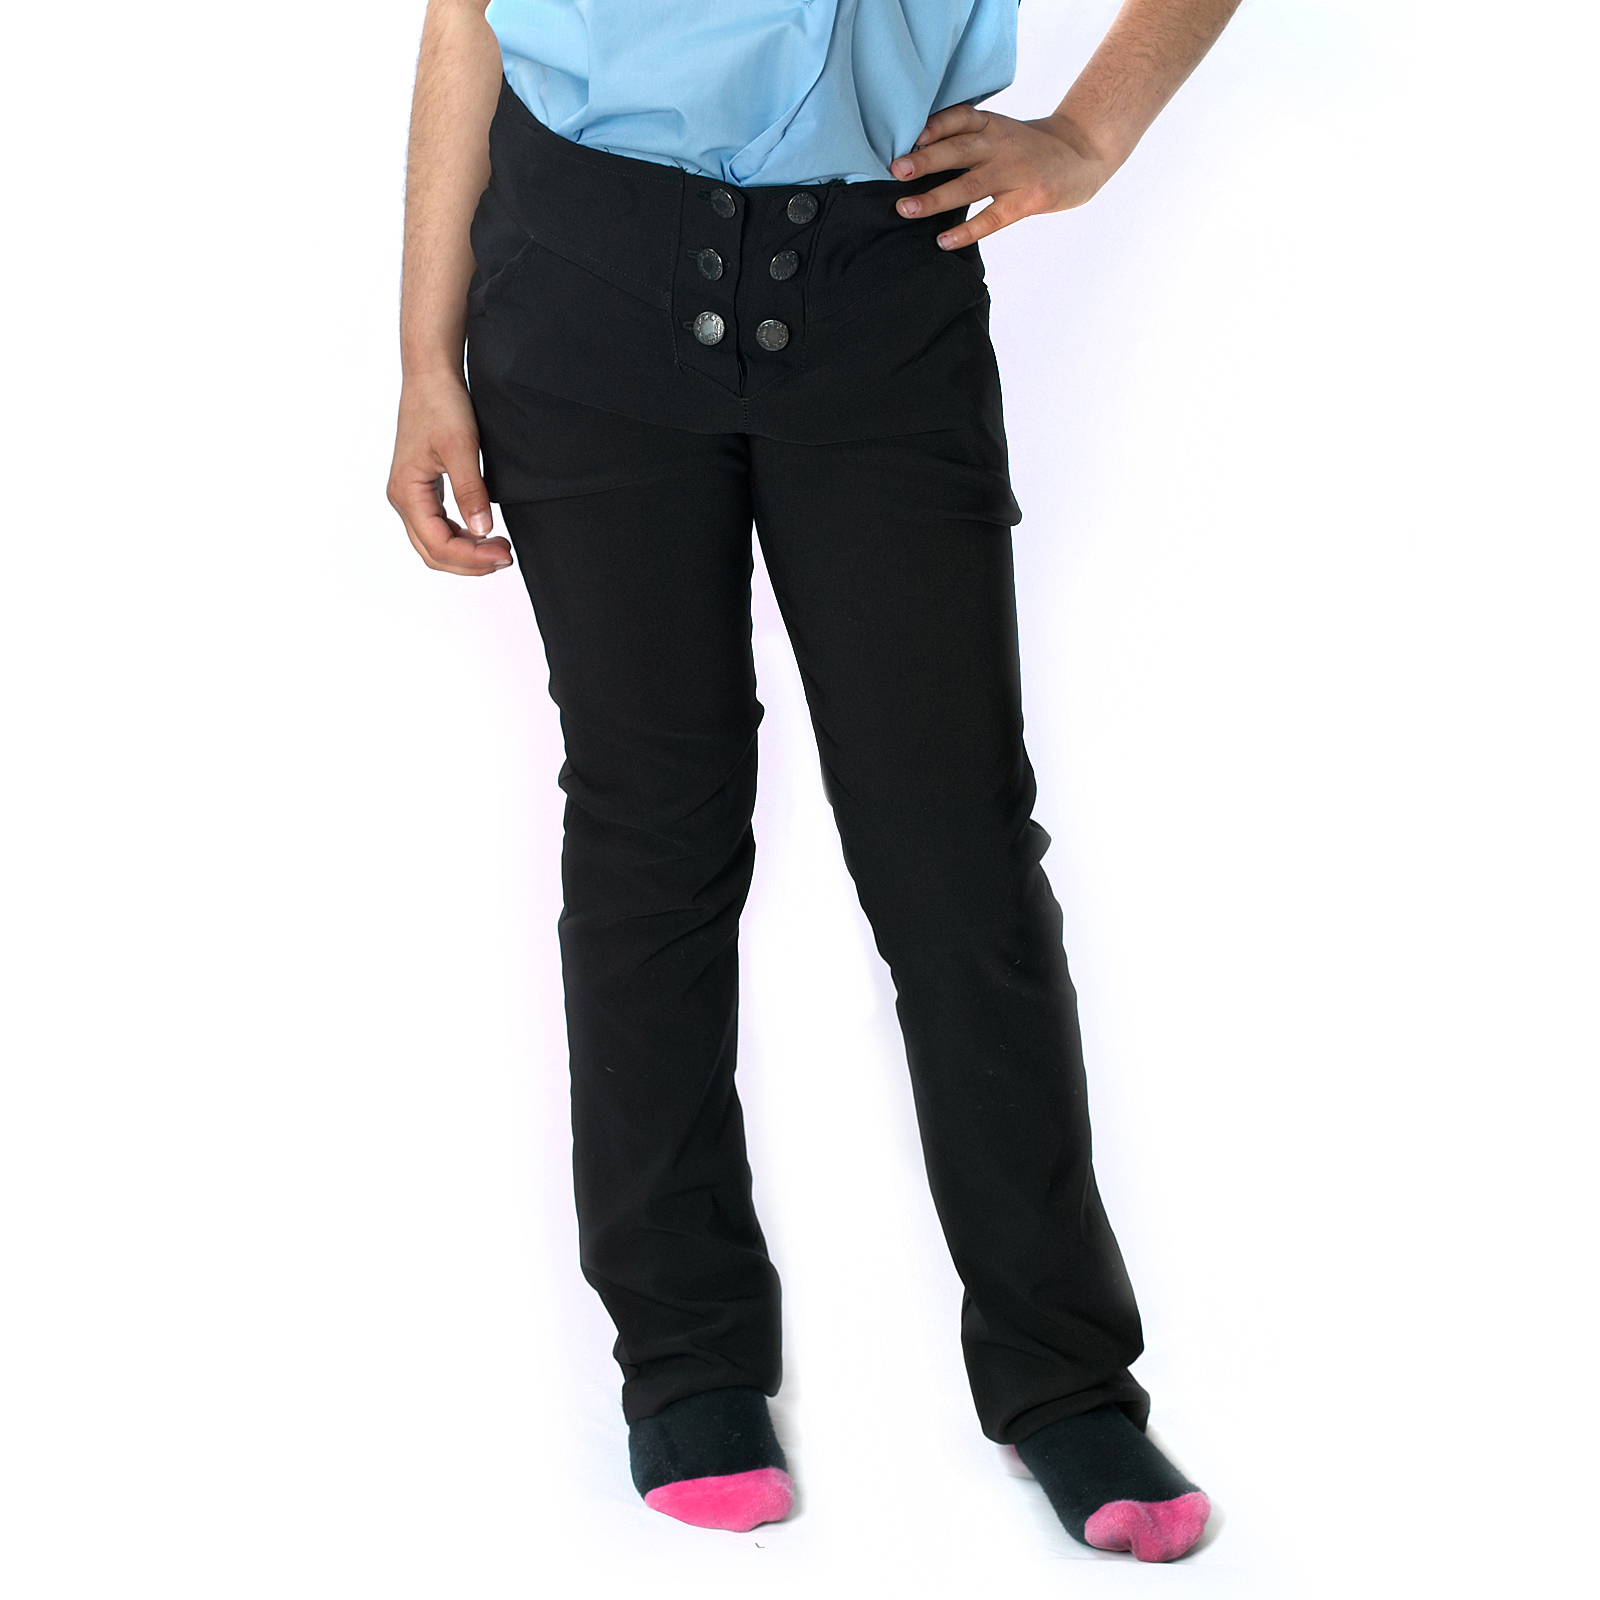 Find great deals on eBay for girls school trousers. Shop with confidence.